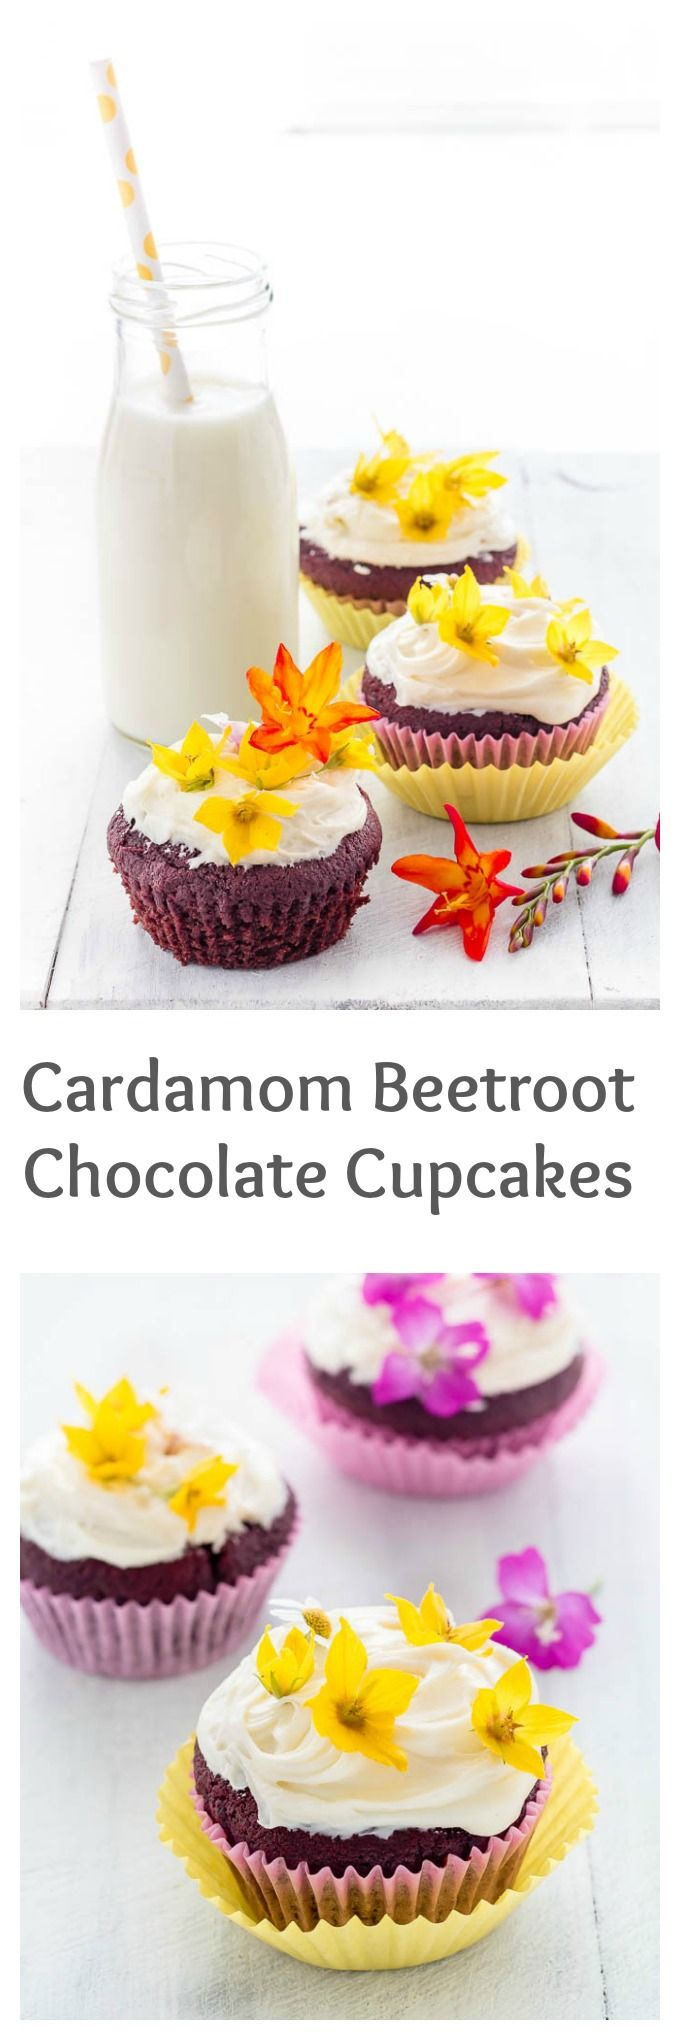 Cardamom Beetroot Chocolate Cupcakes-38   Recipes From A Pantry